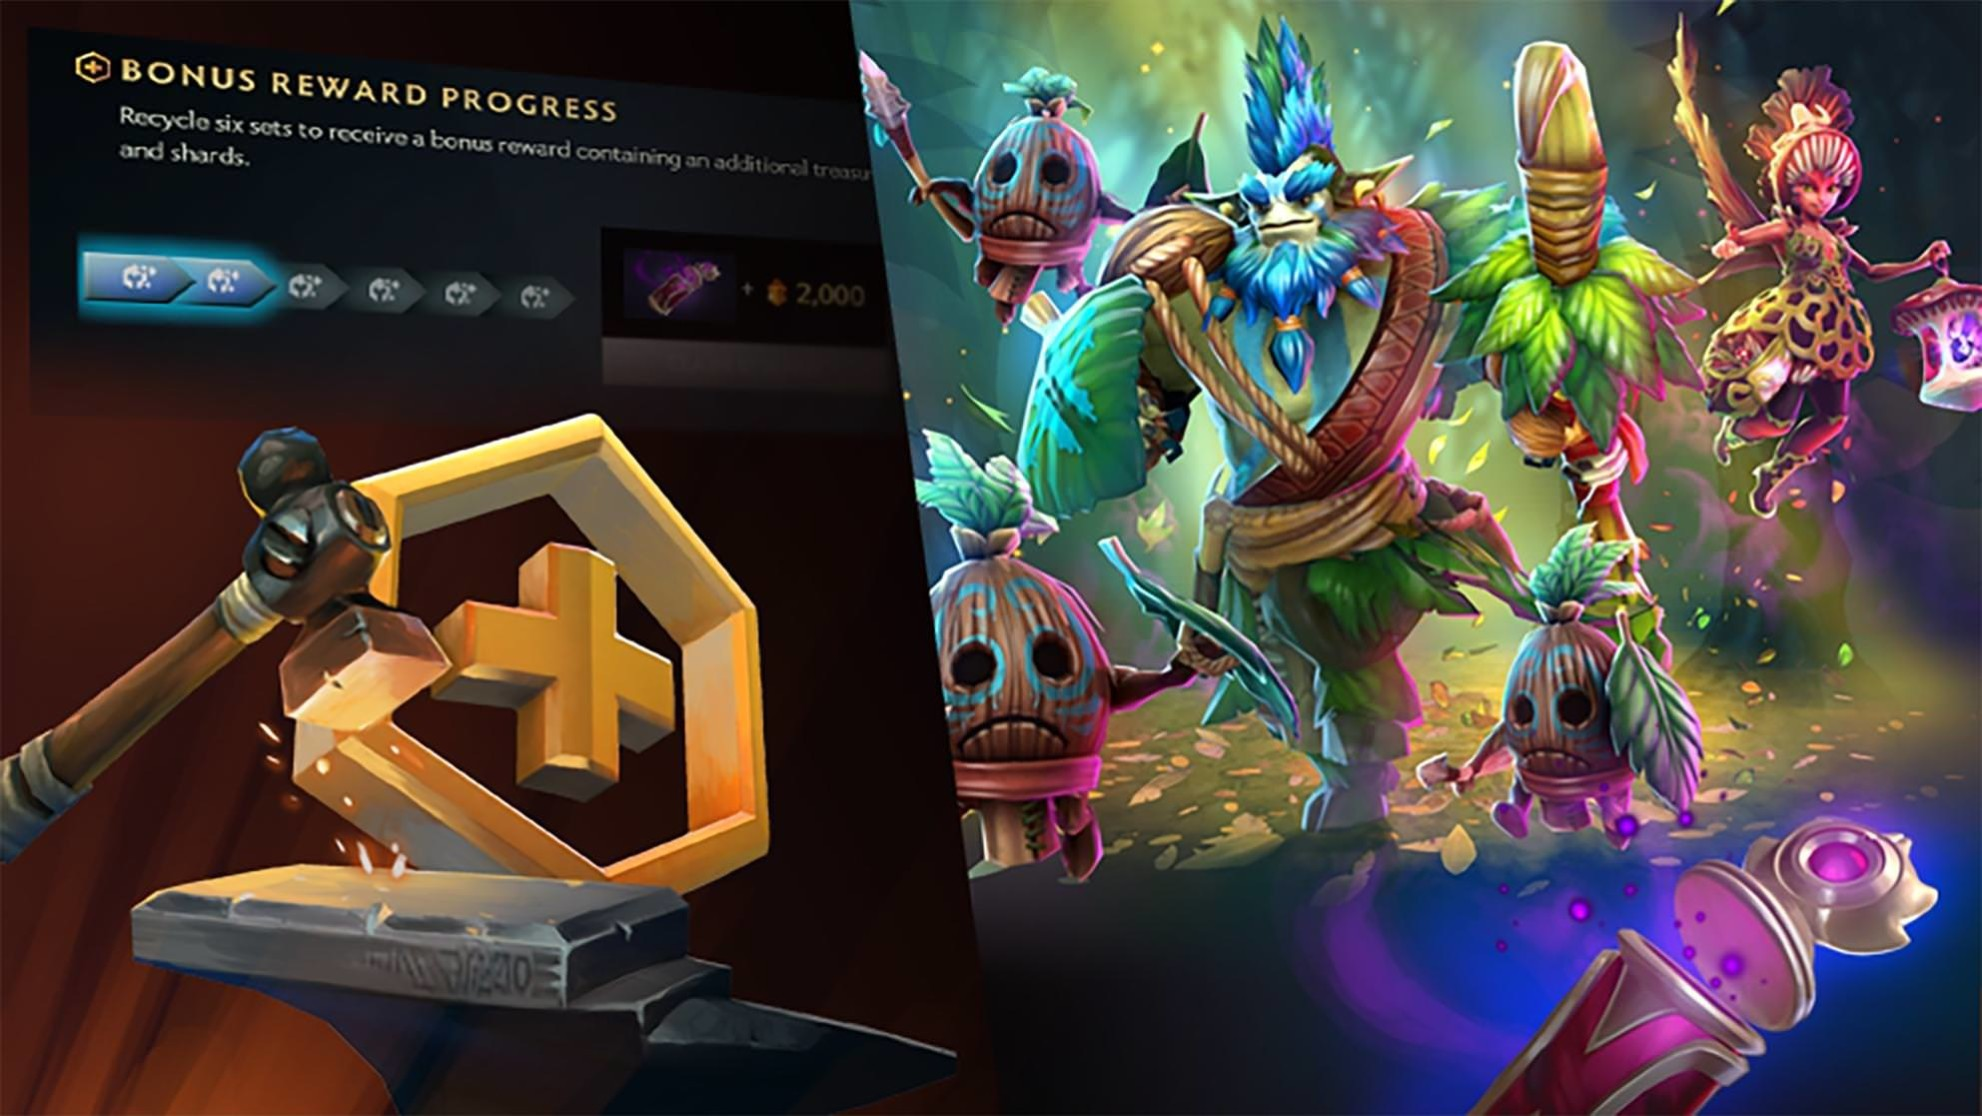 Dota 2 gets a Treasure and a quality of life patch